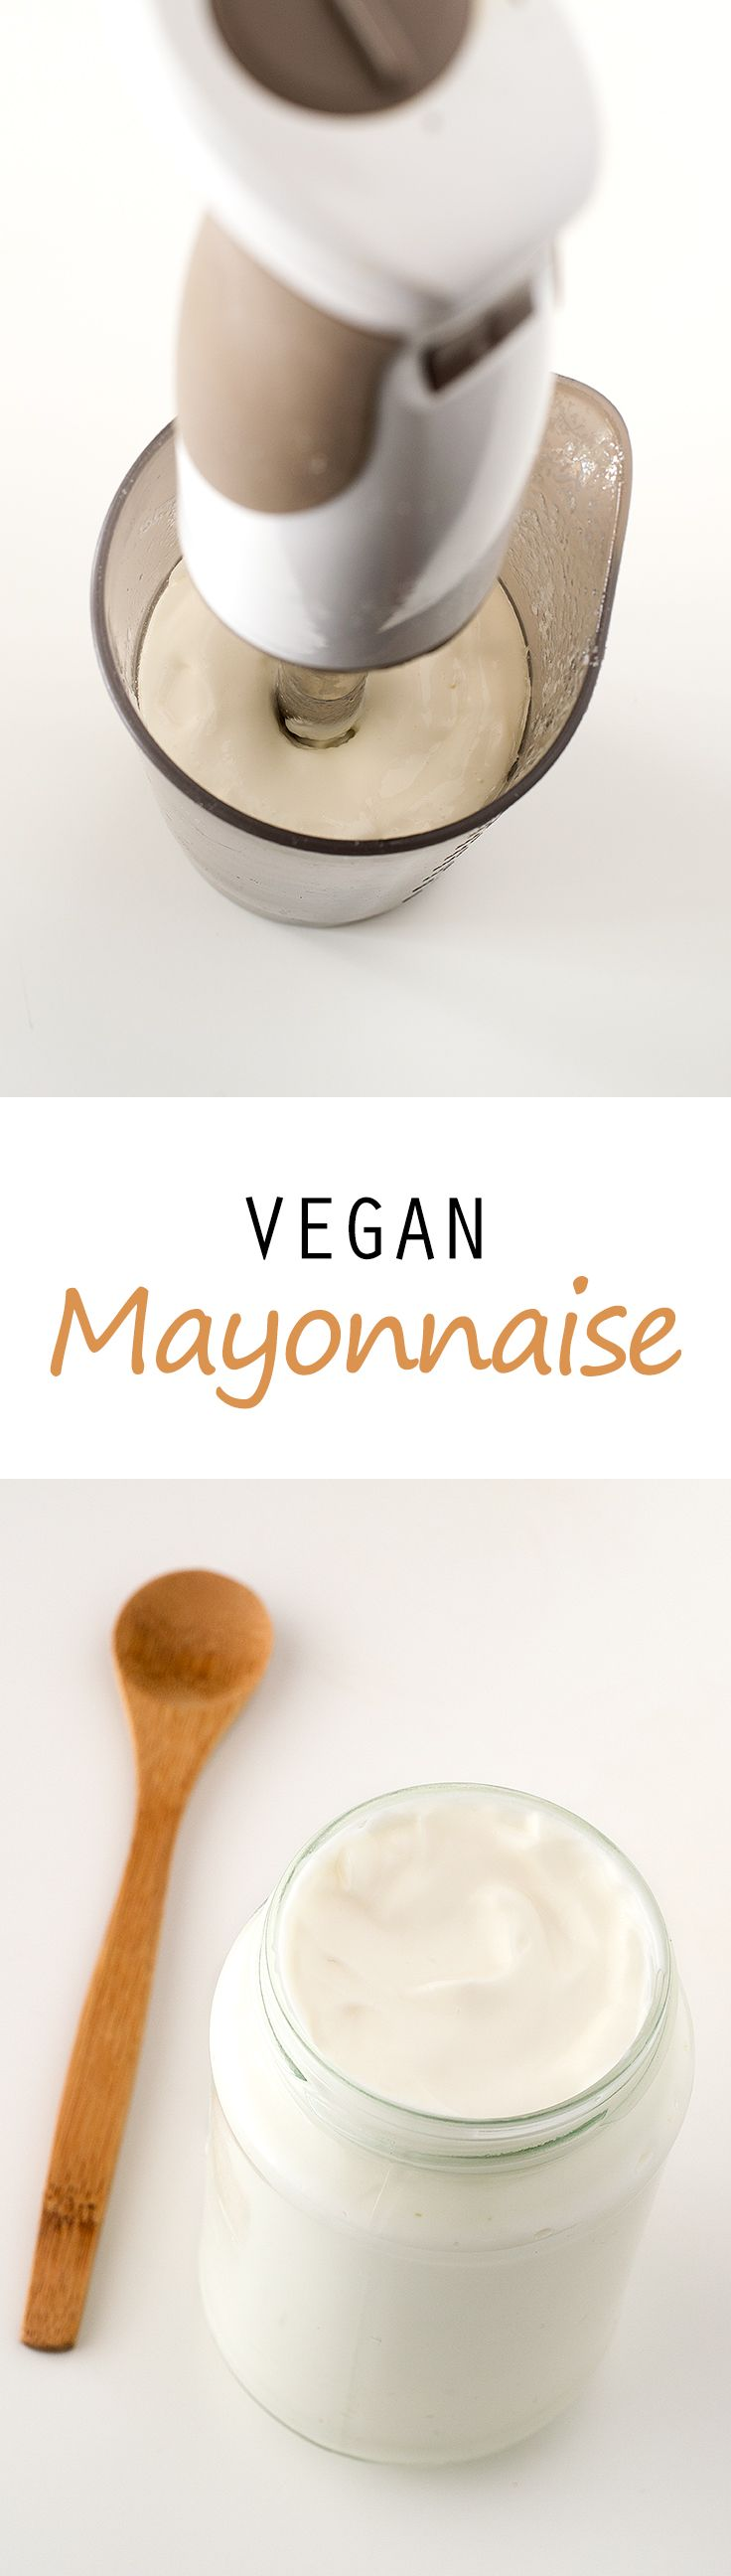 Vegan Mayonnaise #vegan #glutenfree